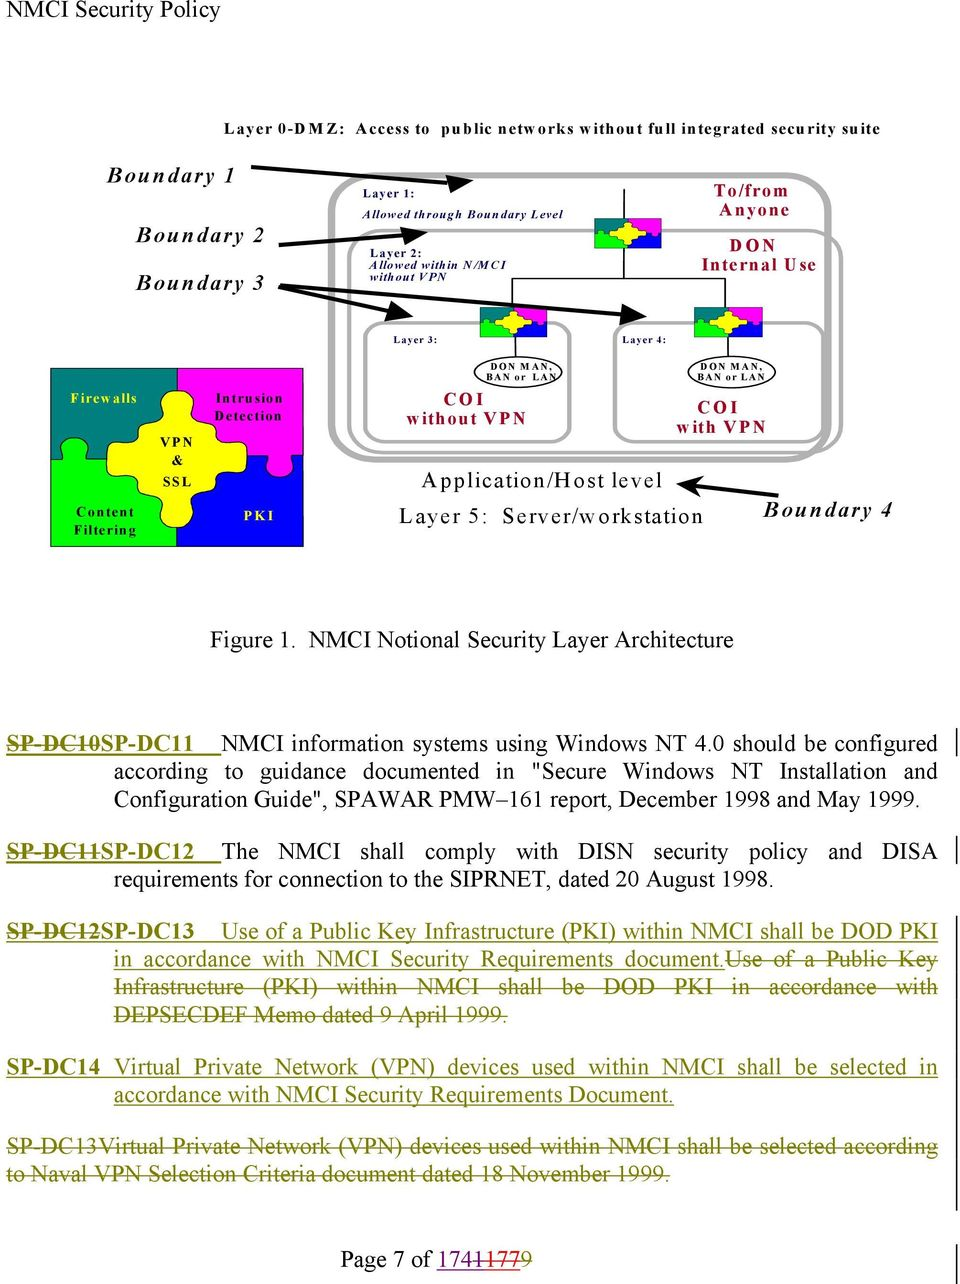 DON MAN, BAN or LAN COI with VPN Boundary 4 Figure 1. NMCI Notional Security Layer Architecture SP-DC10SP-DC11 NMCI information systems using Windows NT 4.